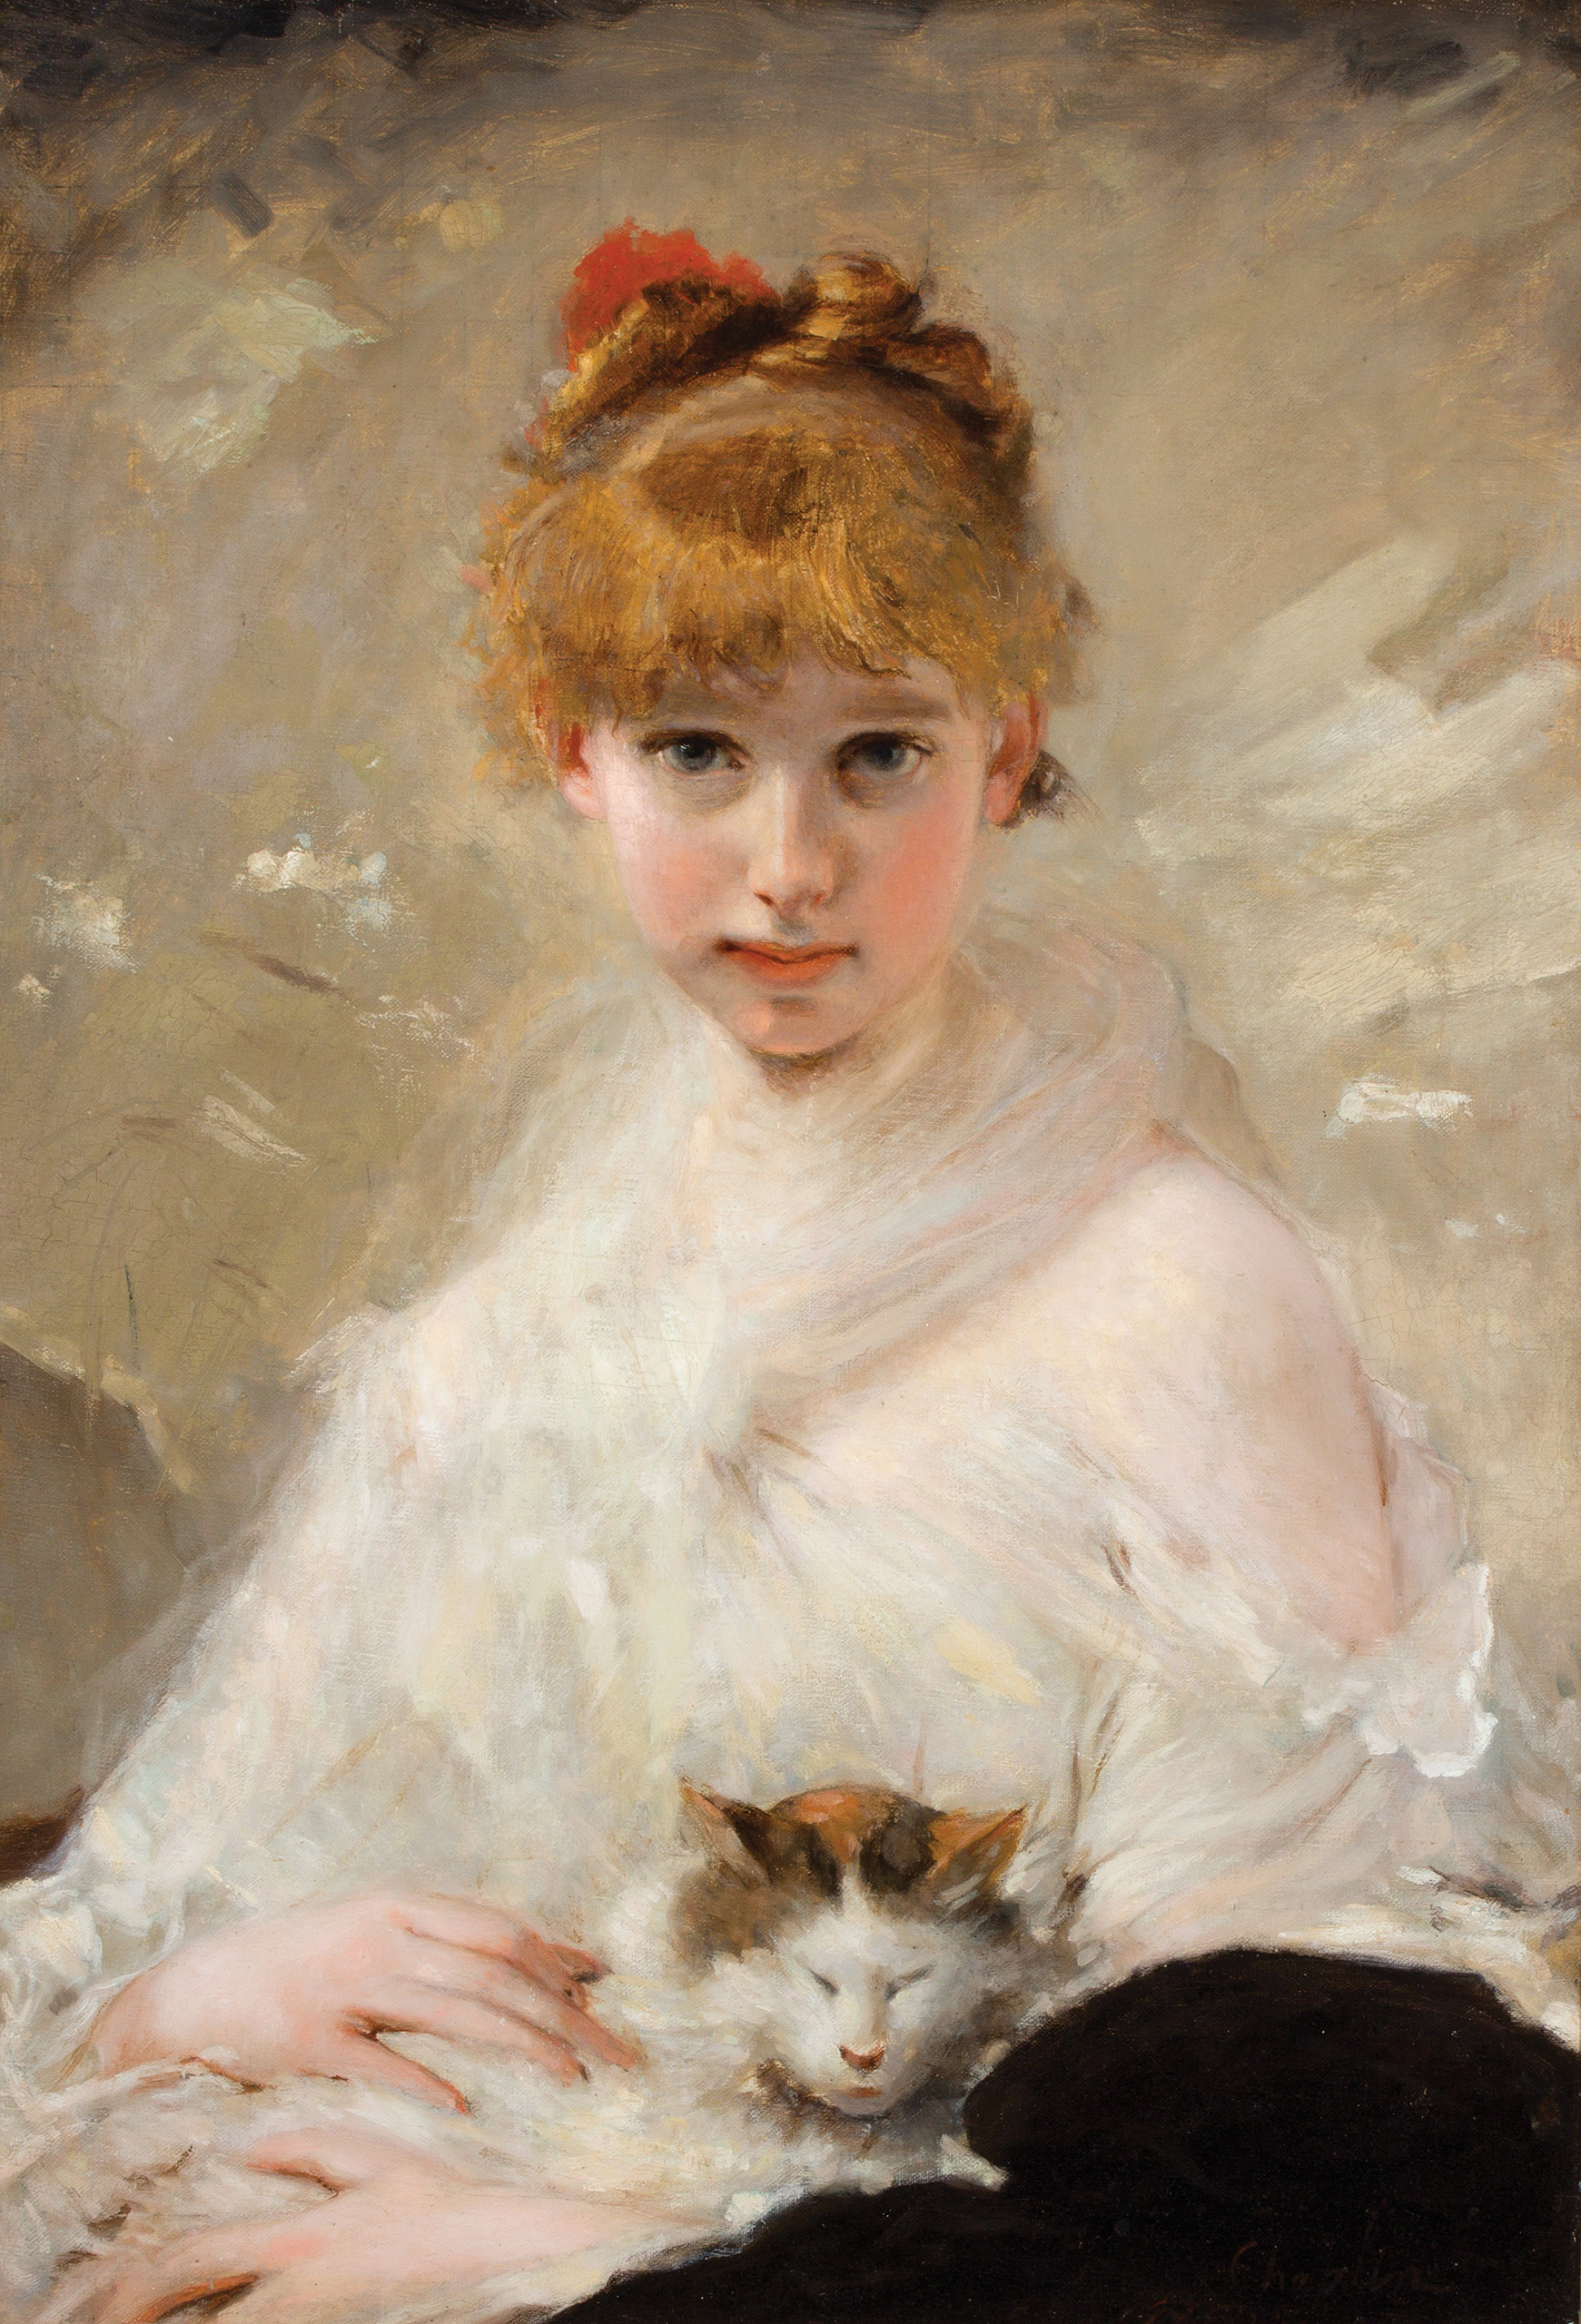 Young Girl with Her Cat (Charles Chaplin)